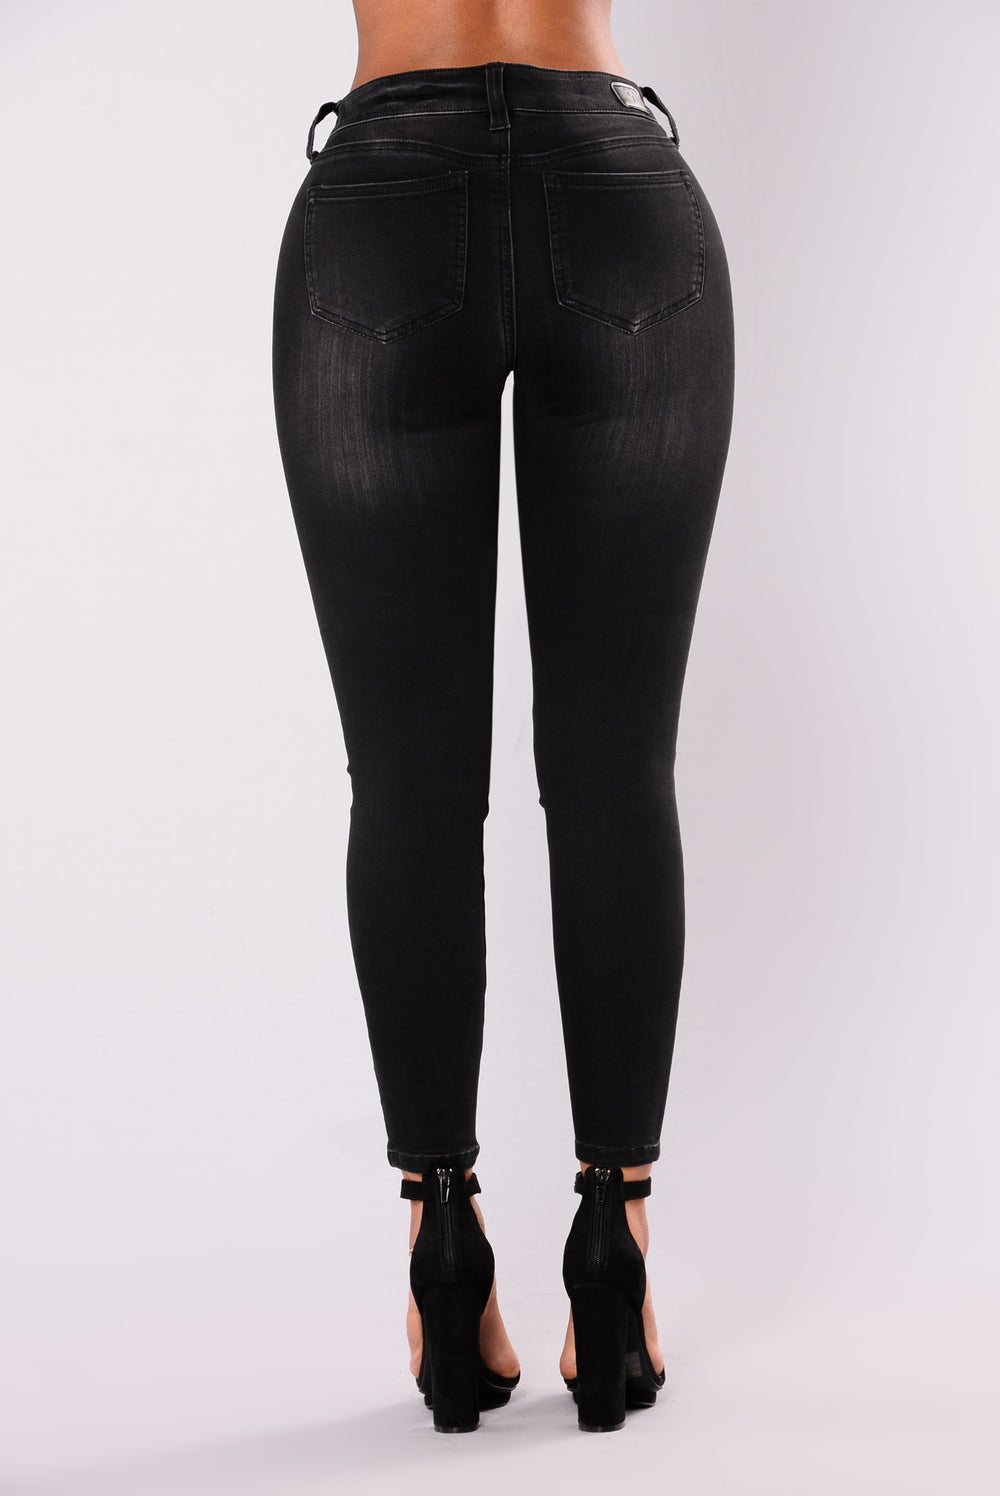 What's Your Curfew Skinny Jeans - Black